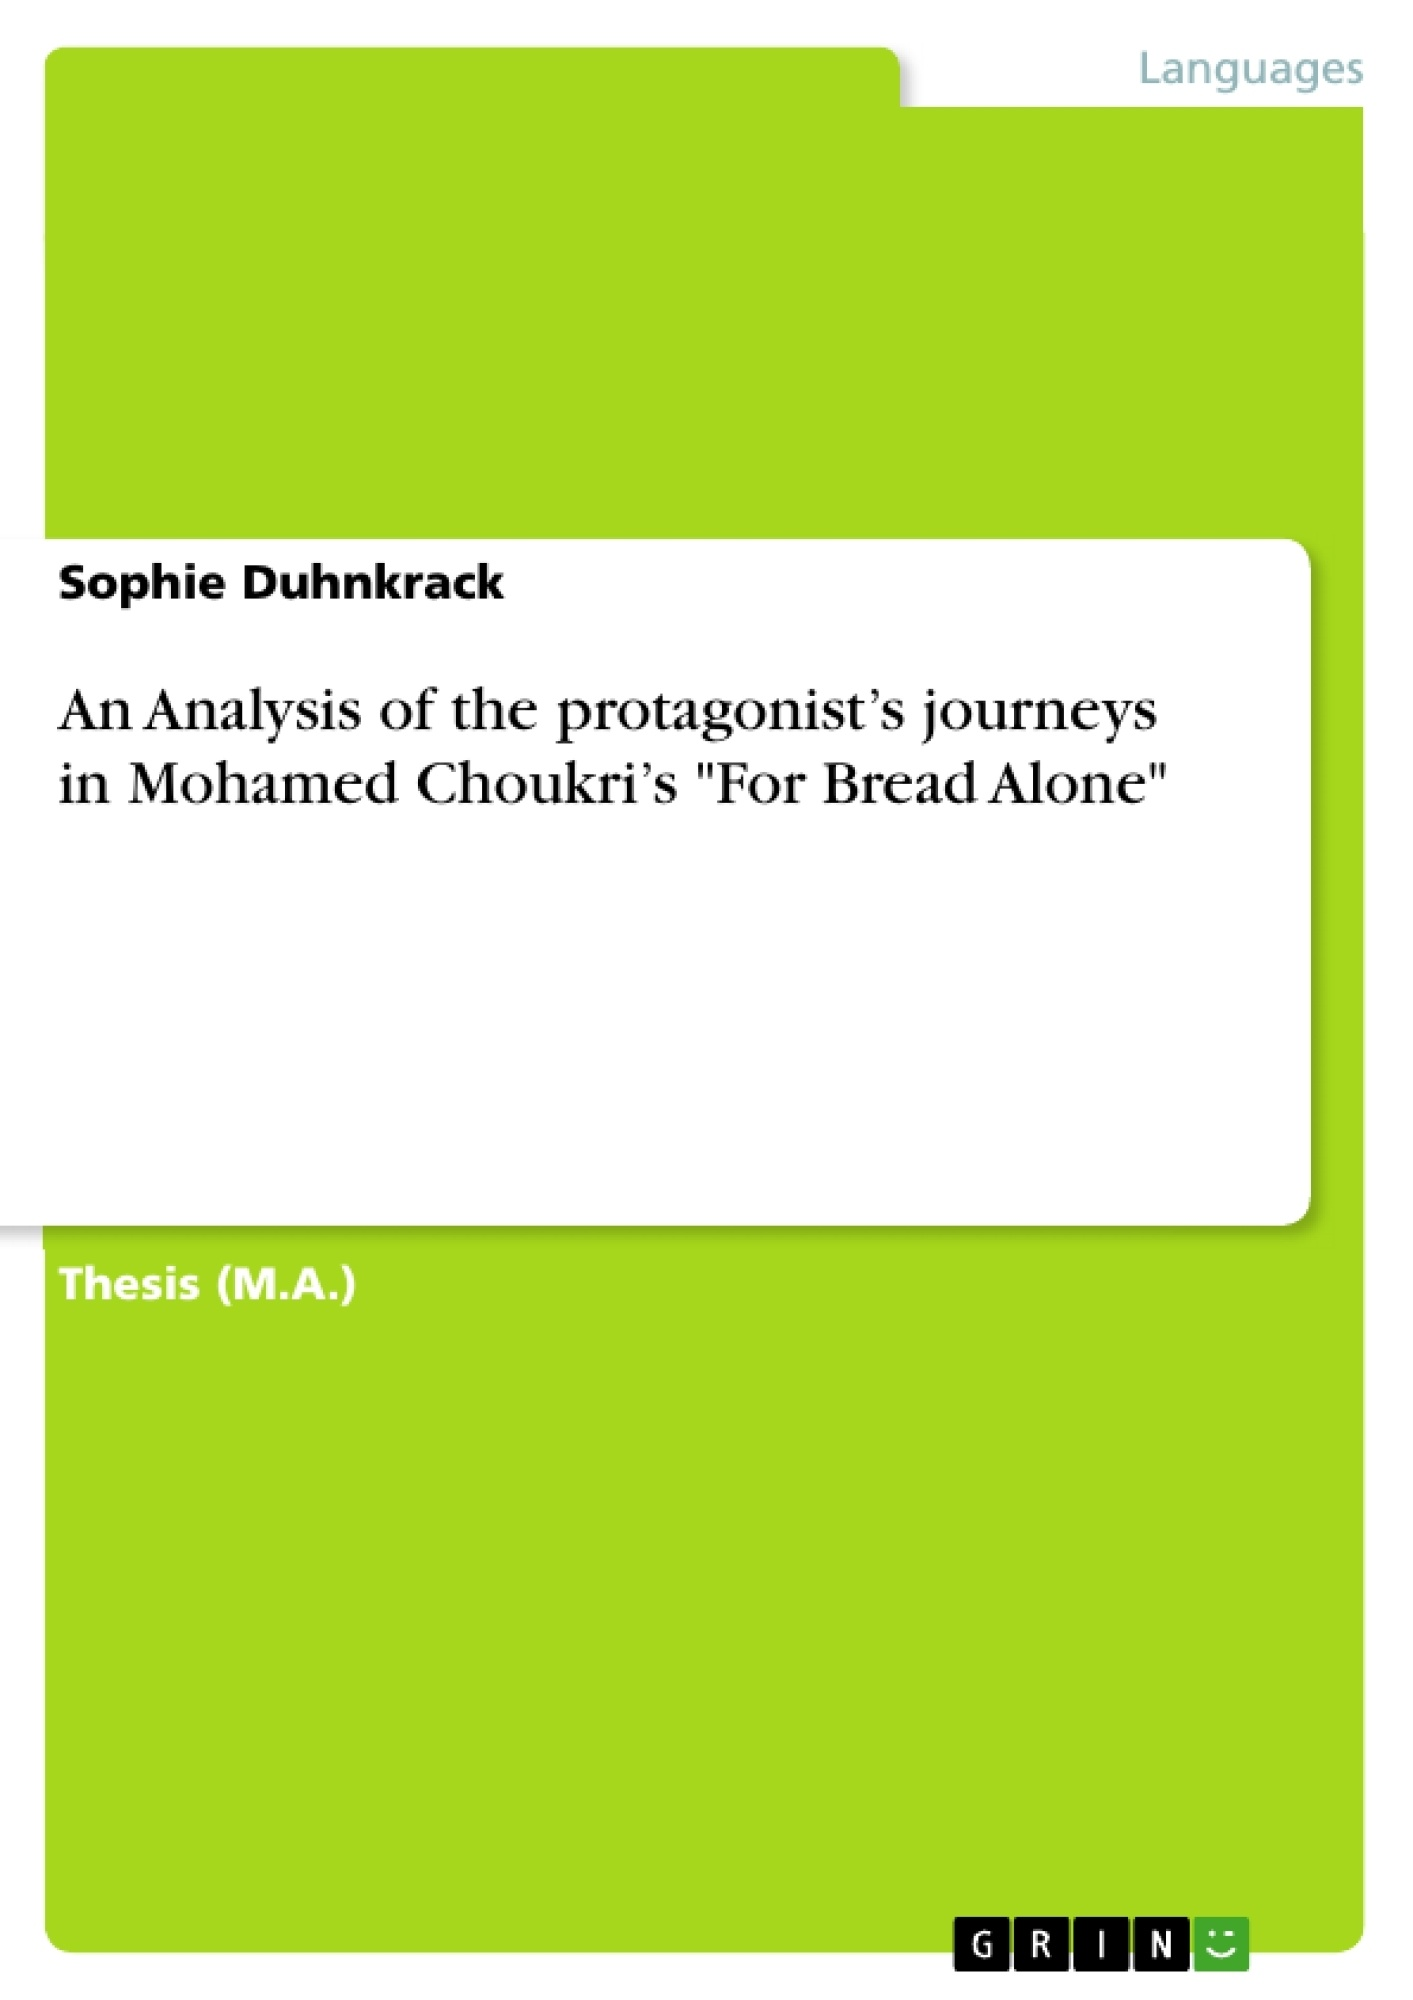 an analysis of the protagonist s journeys in mohamed choukri s an analysis of the protagonist s journeys in mohamed choukri s publish your master s thesis bachelor s thesis essay or term paper